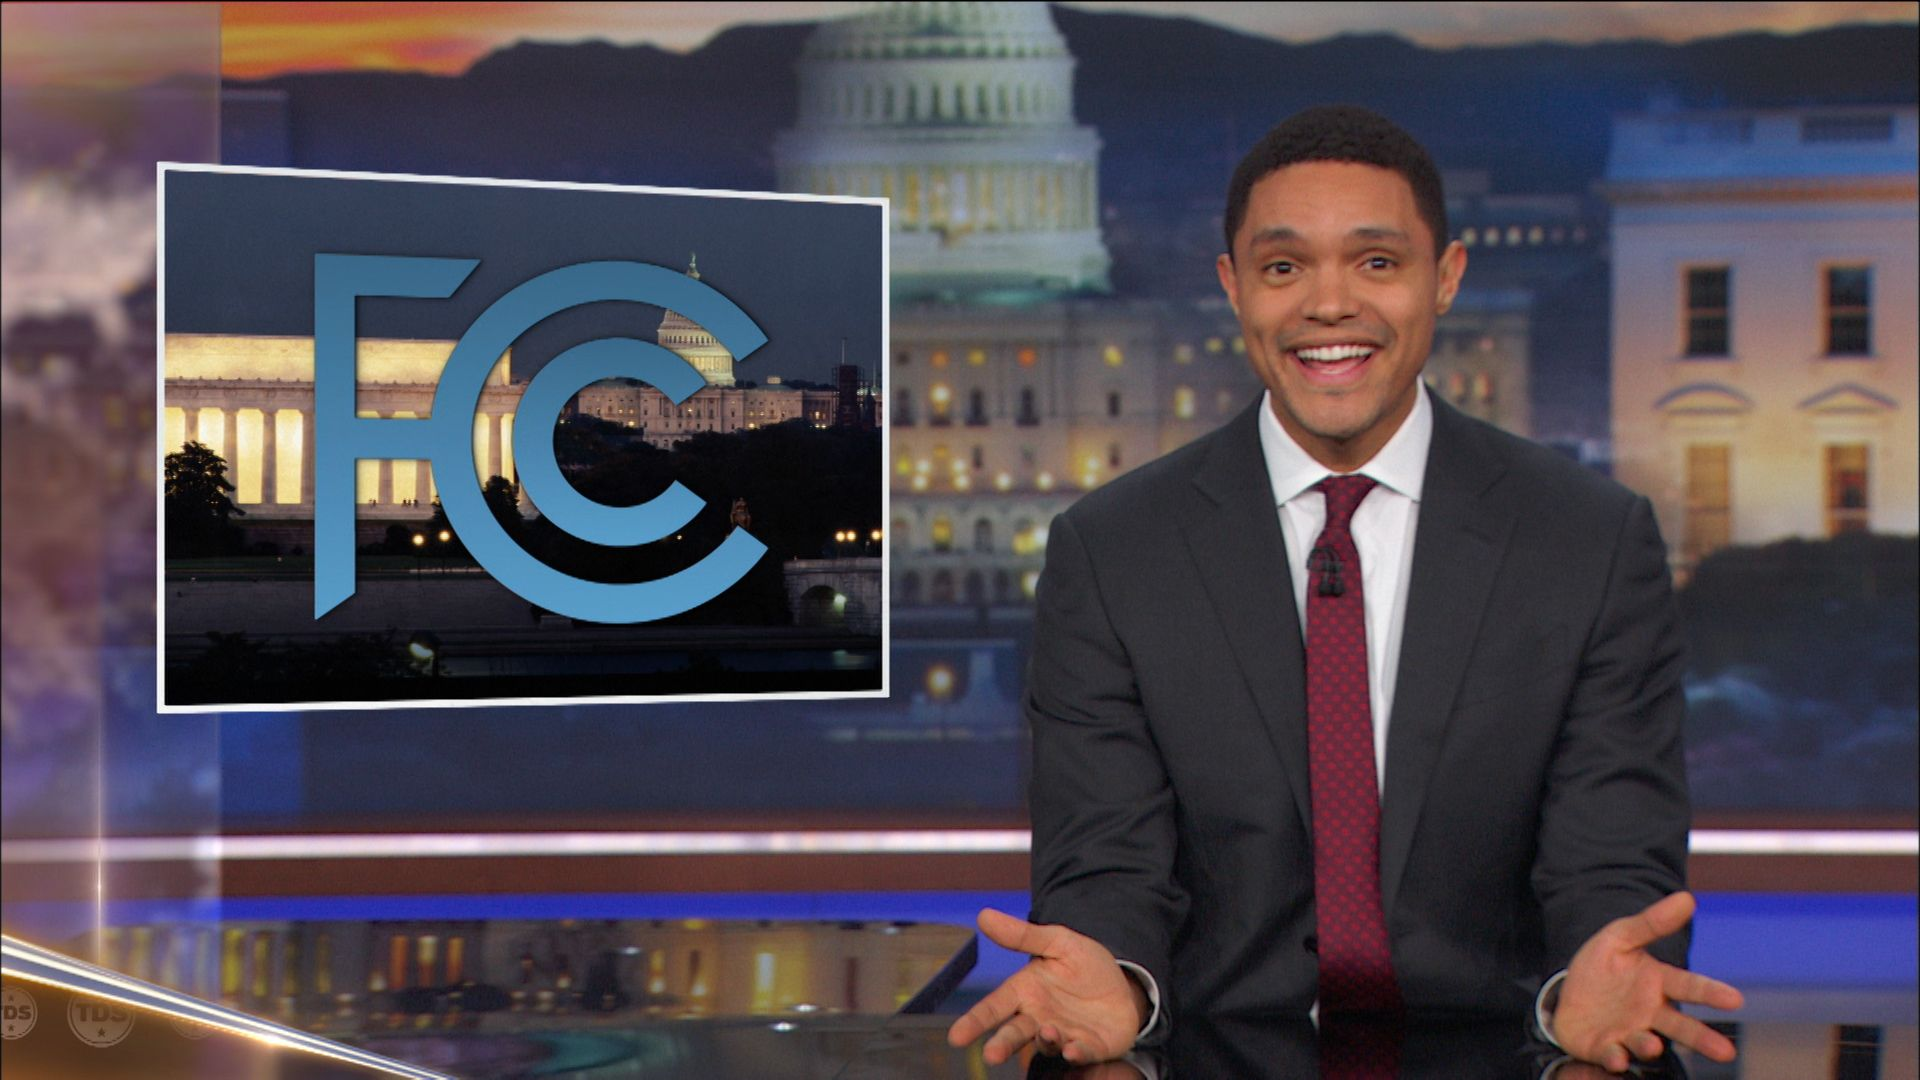 Bye, Felicia: The FCC Kills Net Neutrality & Omarosa Exits the White House  - The Daily Show with Trevor Noah (Video Clip) | Comedy Central